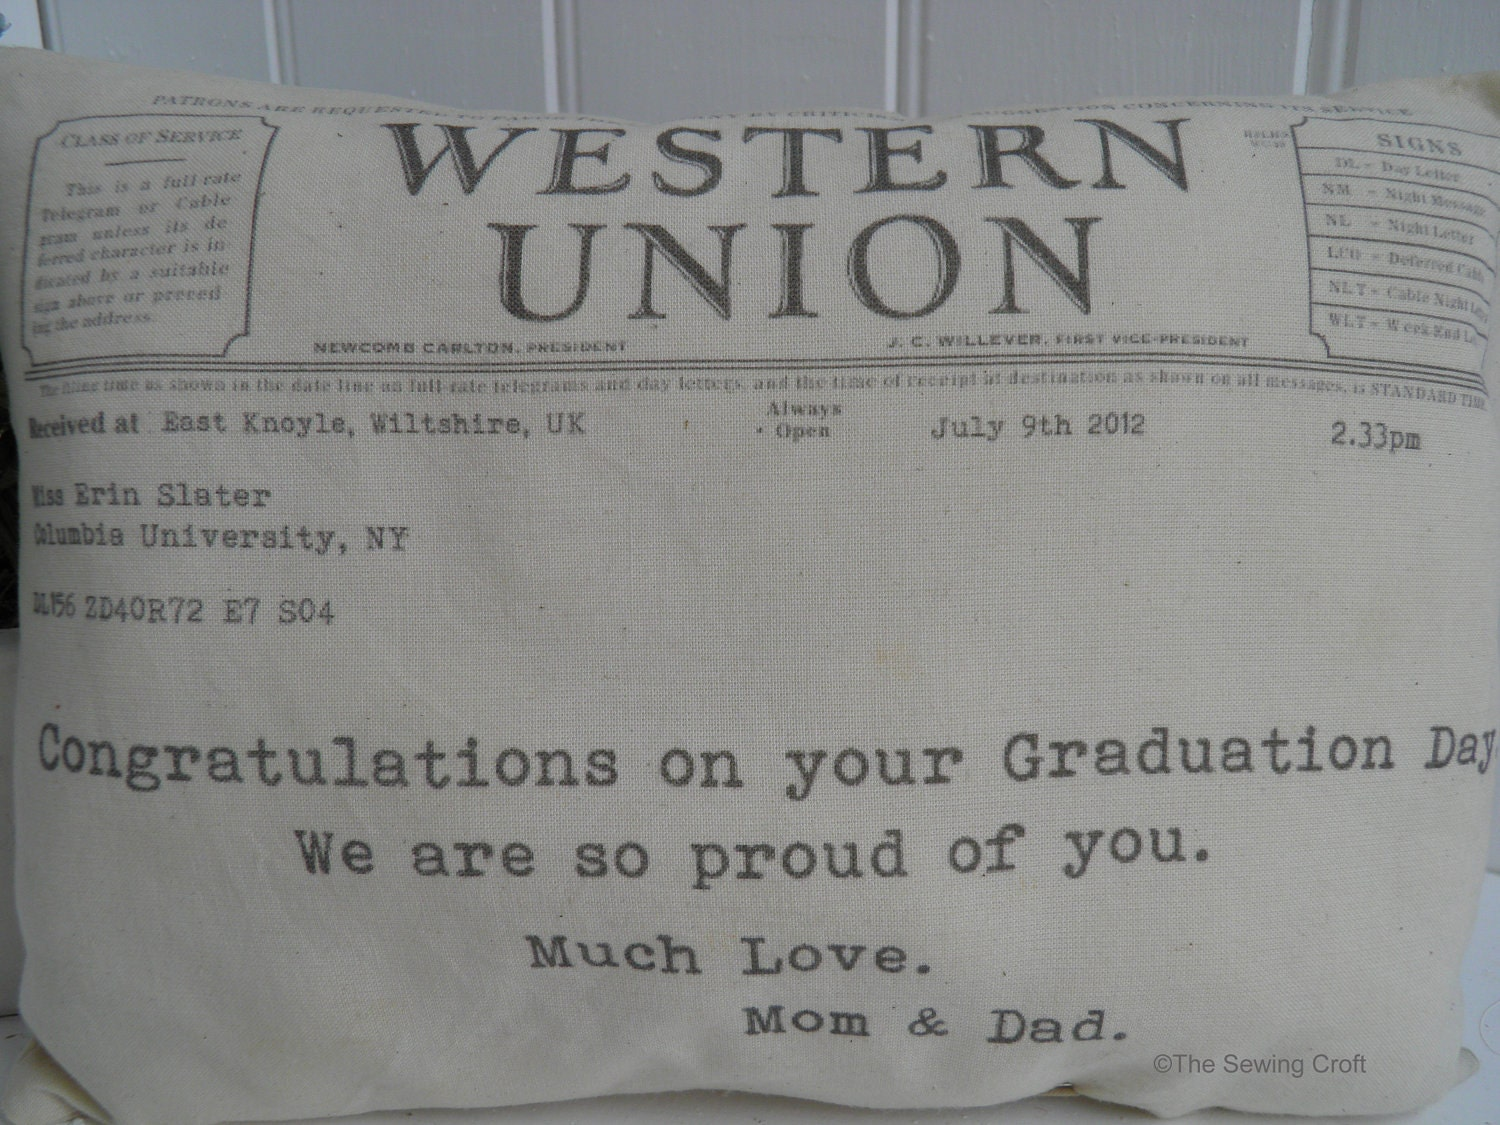 Western Union Telegram Personal Message Pillow Graduation, Birthday, Birth, Celebration